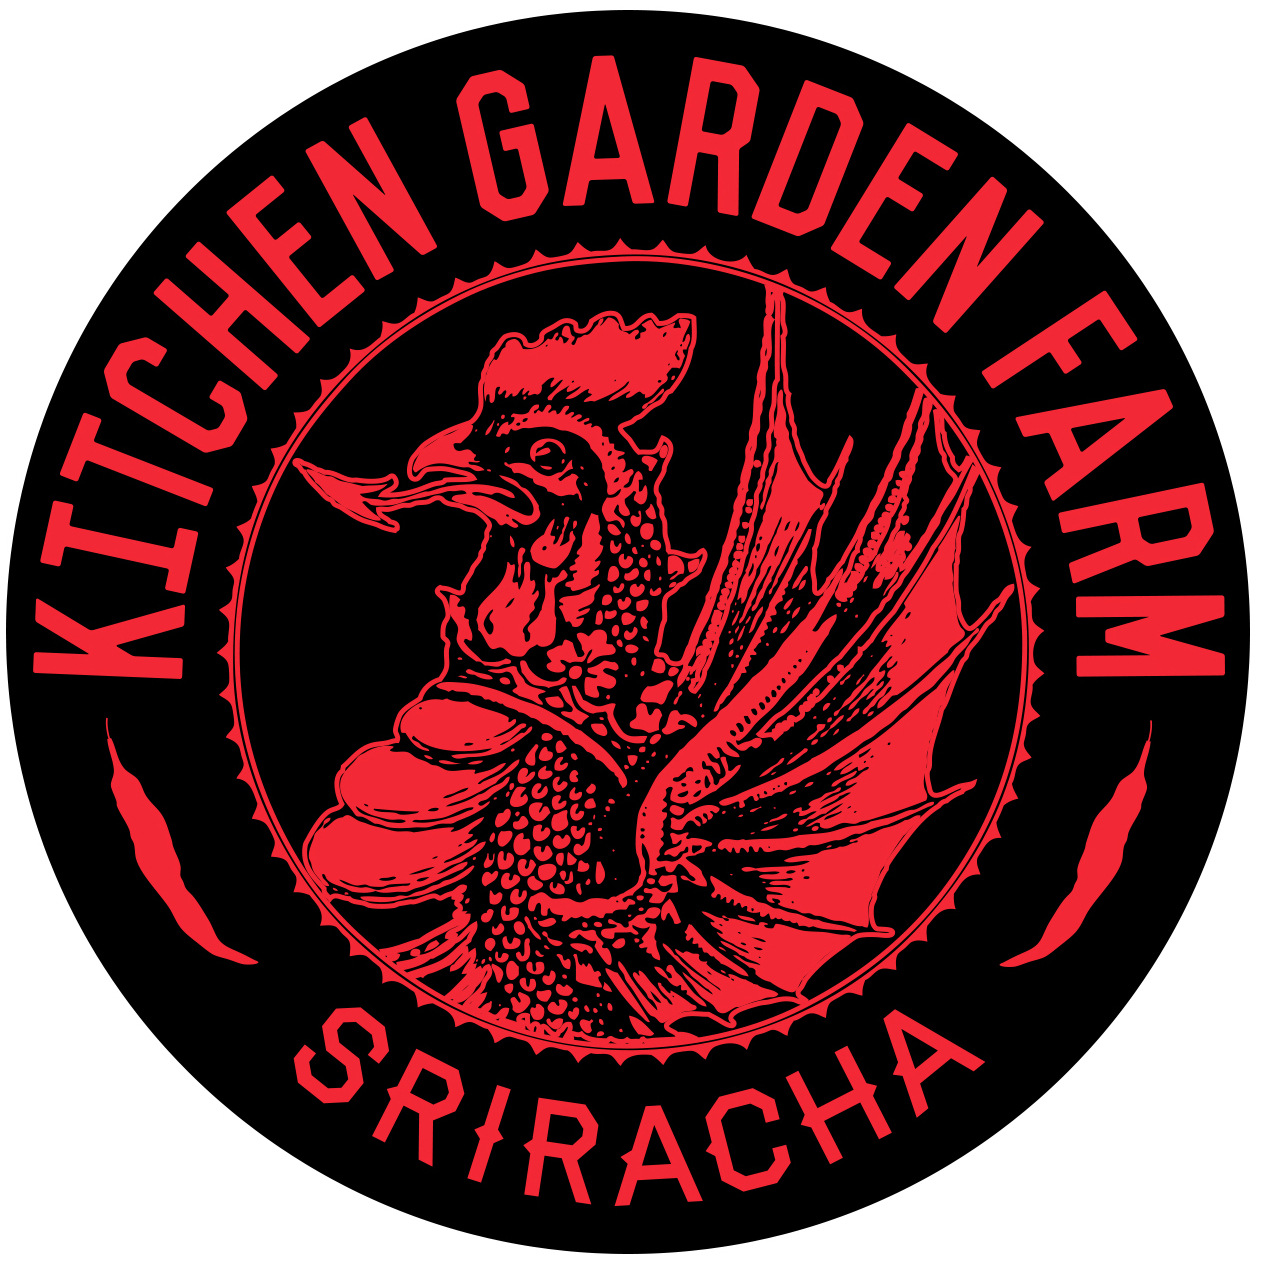 Kitchen Garden Farm